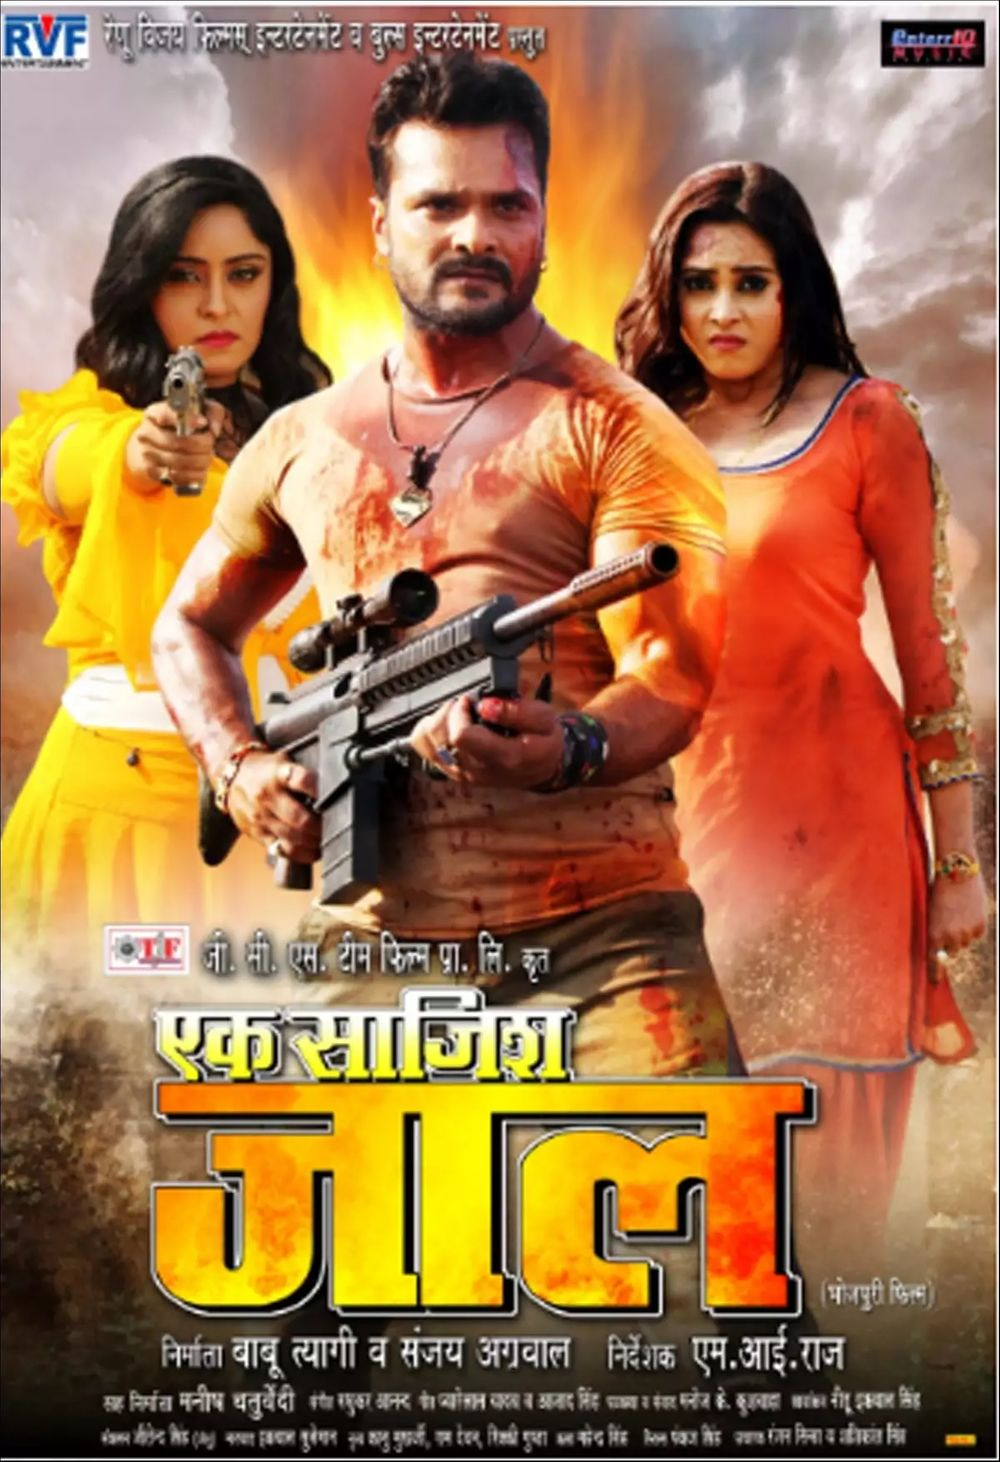 Ek Saazish Jaal 2020 Bhojpuri Movie 720p HDTV 1GB x264 AAC